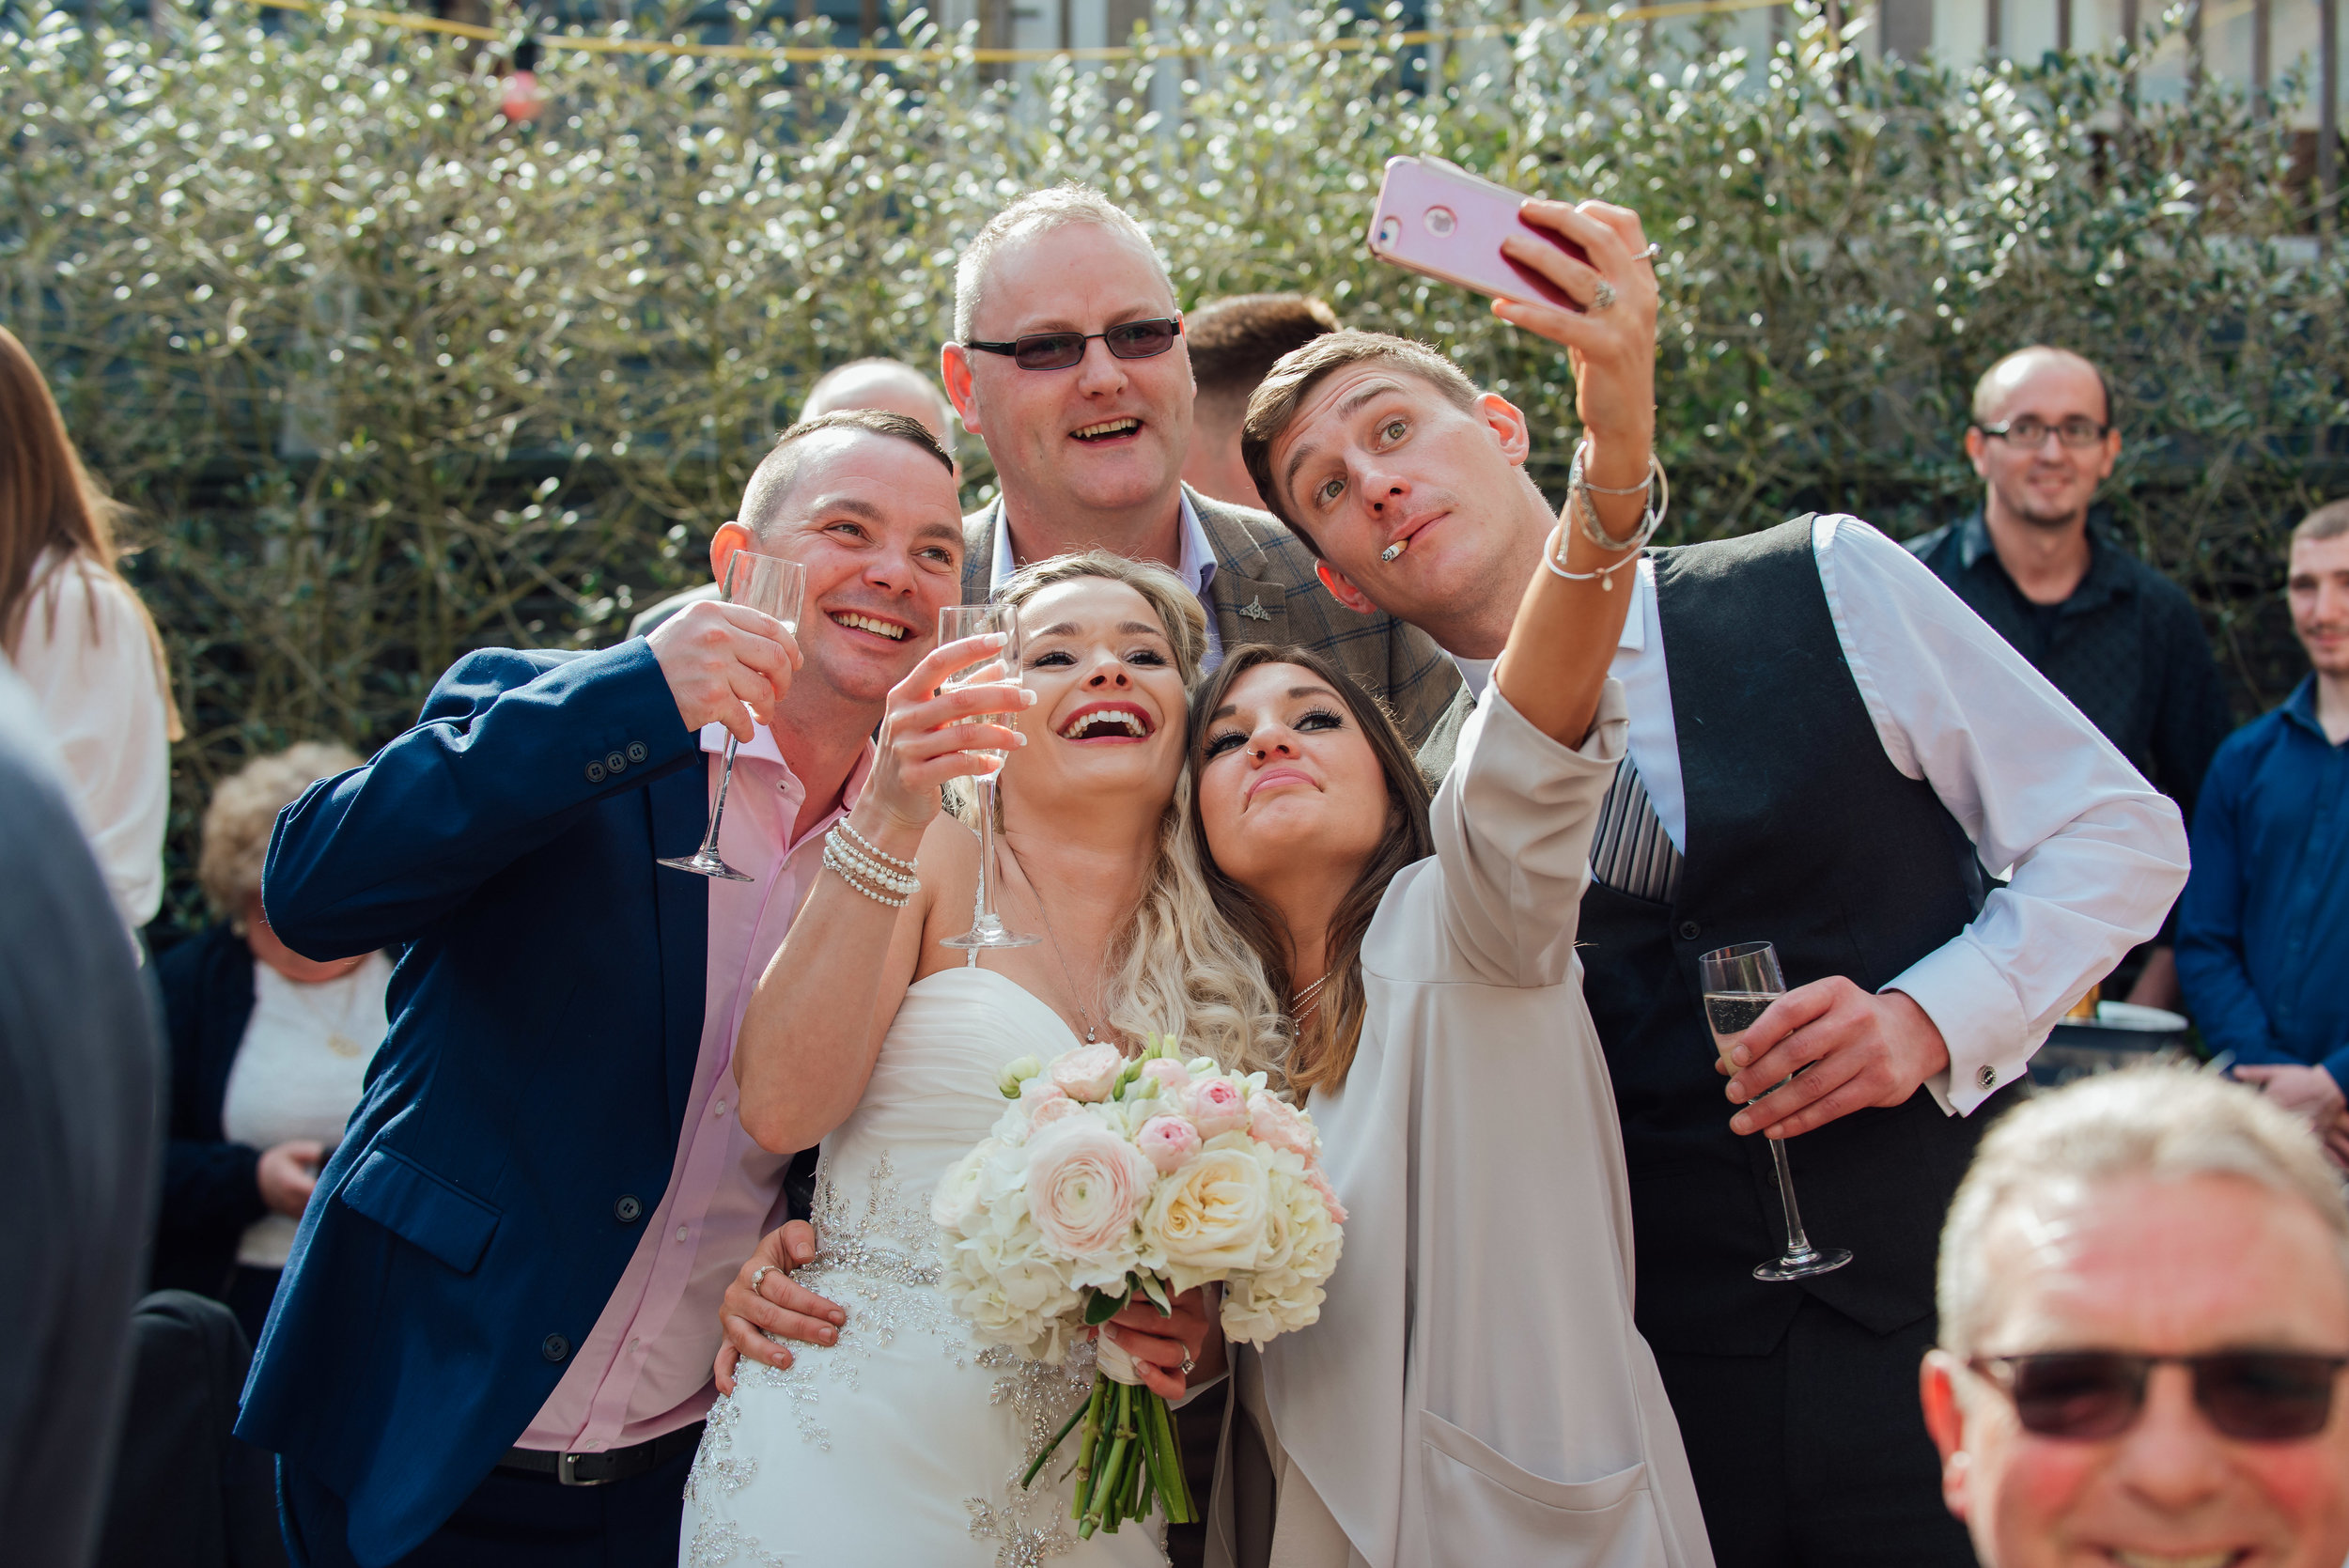 wedding selfie at the George in rye wedding venue - Amy James photography - Hampshire wedding photographer - Berkshire wedding photographer - Surrey wedding photographer